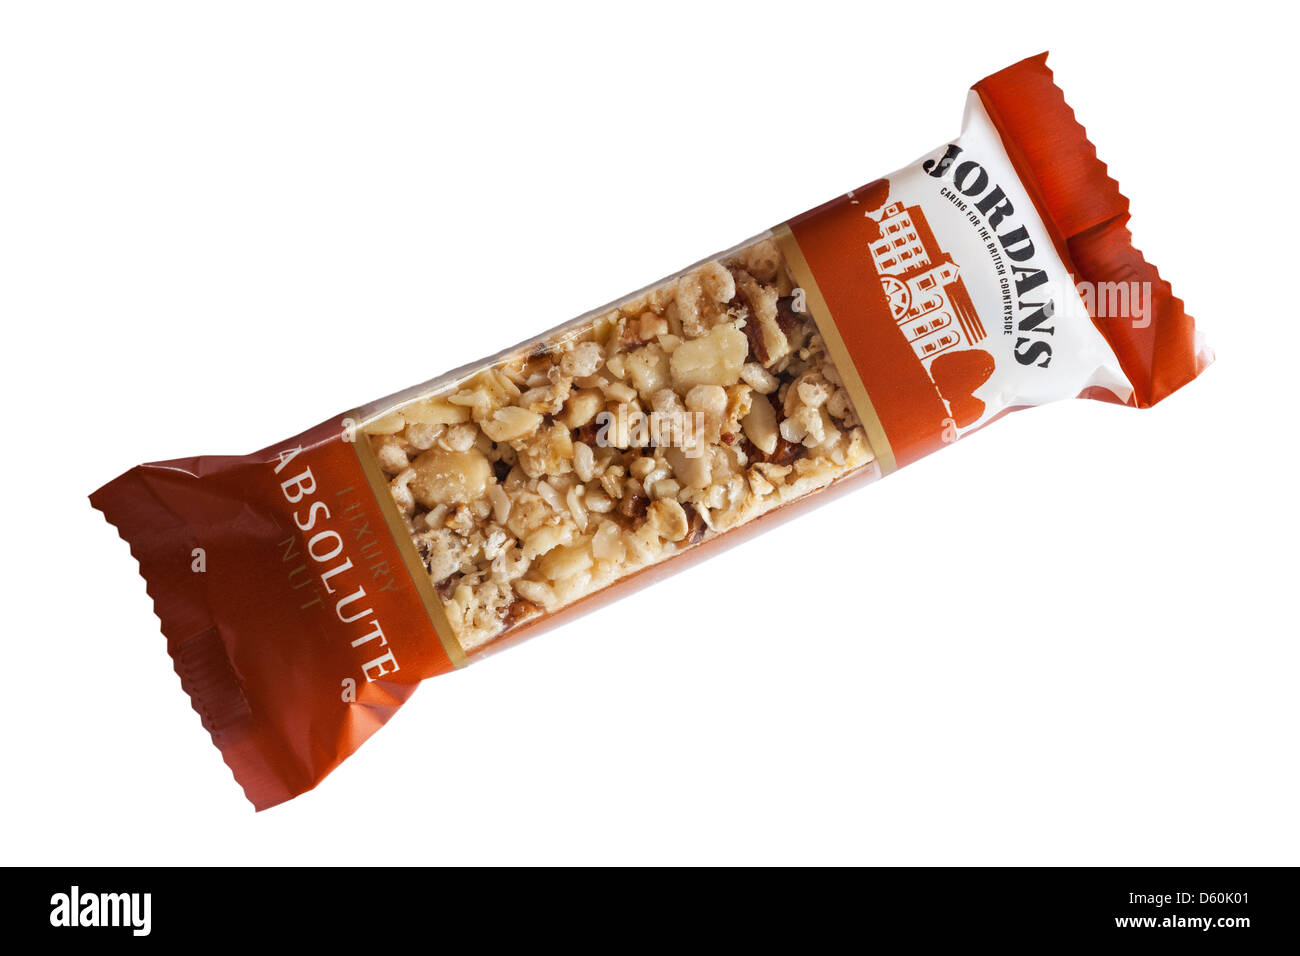 A Jordans absolute nut nutty cereal bar on a white background - Stock Image